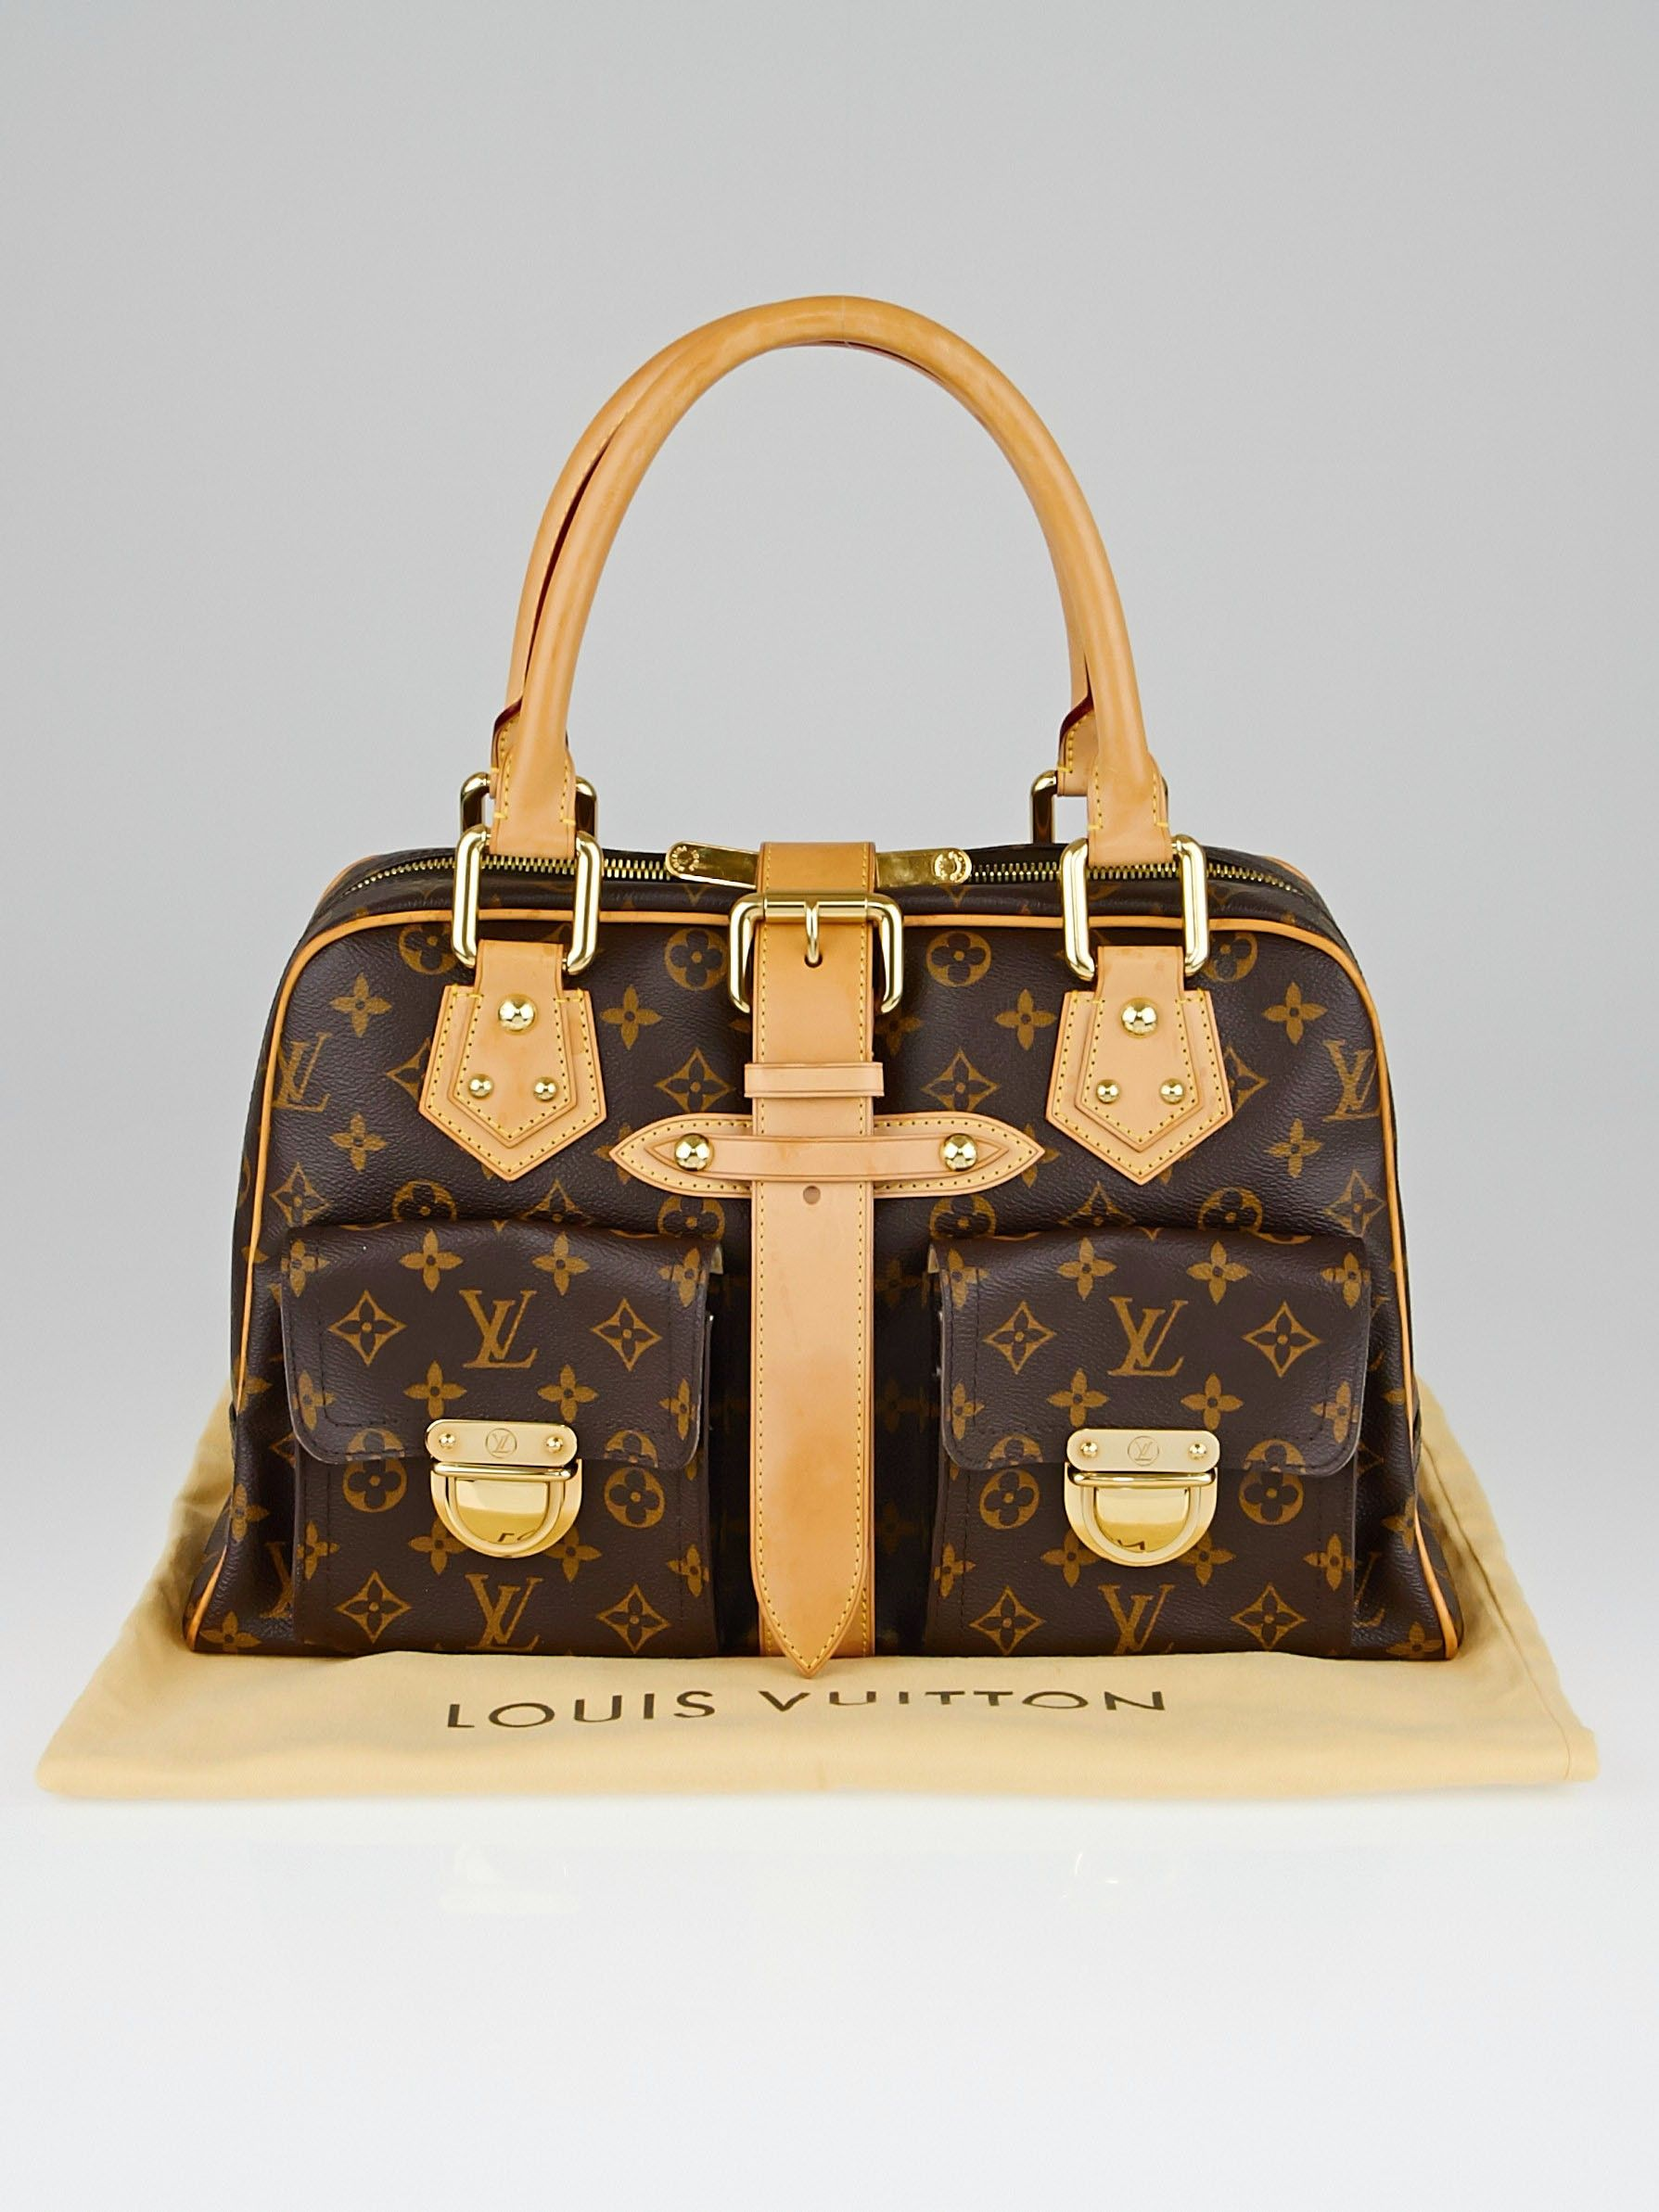 A mixture of Marc Jacobs  iconic bags with Louis Vuitton s classic  signatures is what makes this stunning bag a winning combination. a0ea888329c6e